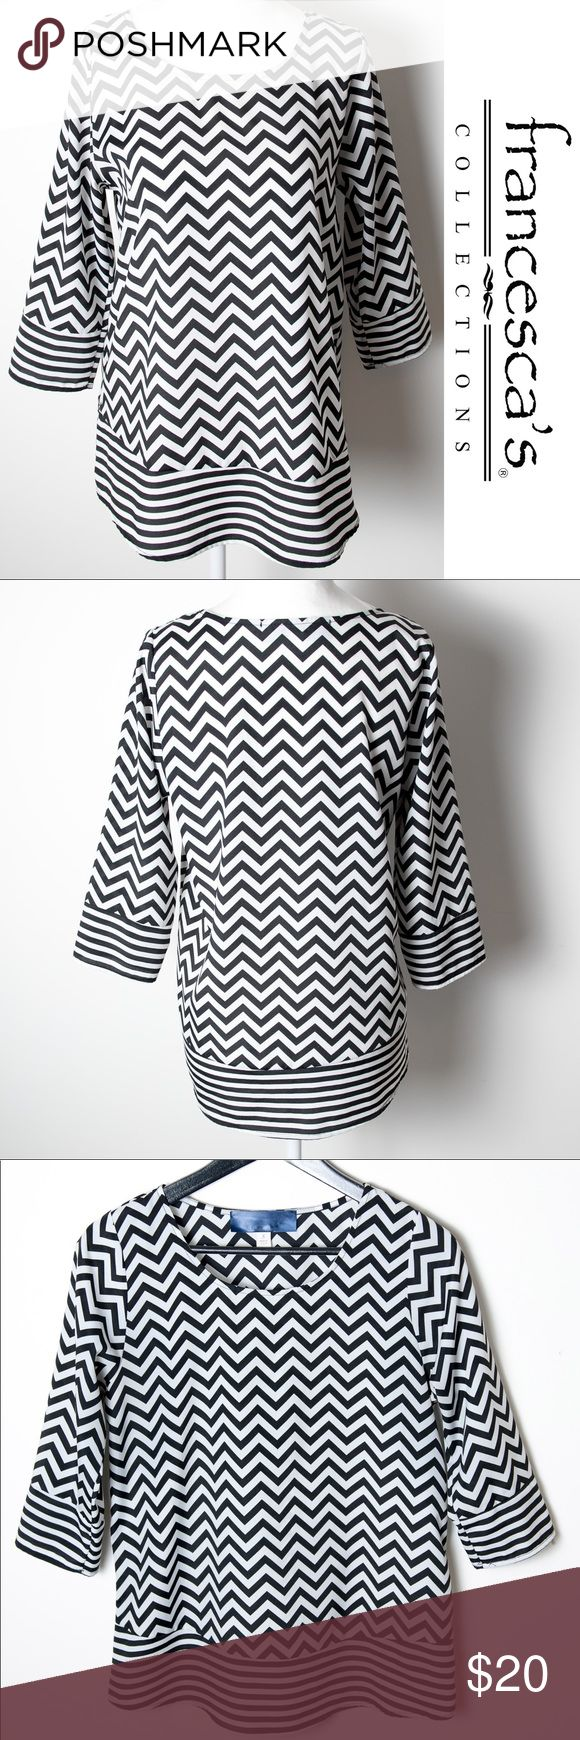 Francesca's Black White Chevron Top 3/4 Sleeve Sm Tag is worn off, but this is a Blue Rain blouse from Francesca's. 3/4 sleeve, chevron and stripe pattern in black and white. Excellent used condition. Lightweight - perfect for summer and warmer weather. 100% polyester, machine wash warm water, tumble dry low. Francesca's Collections Tops Blouses